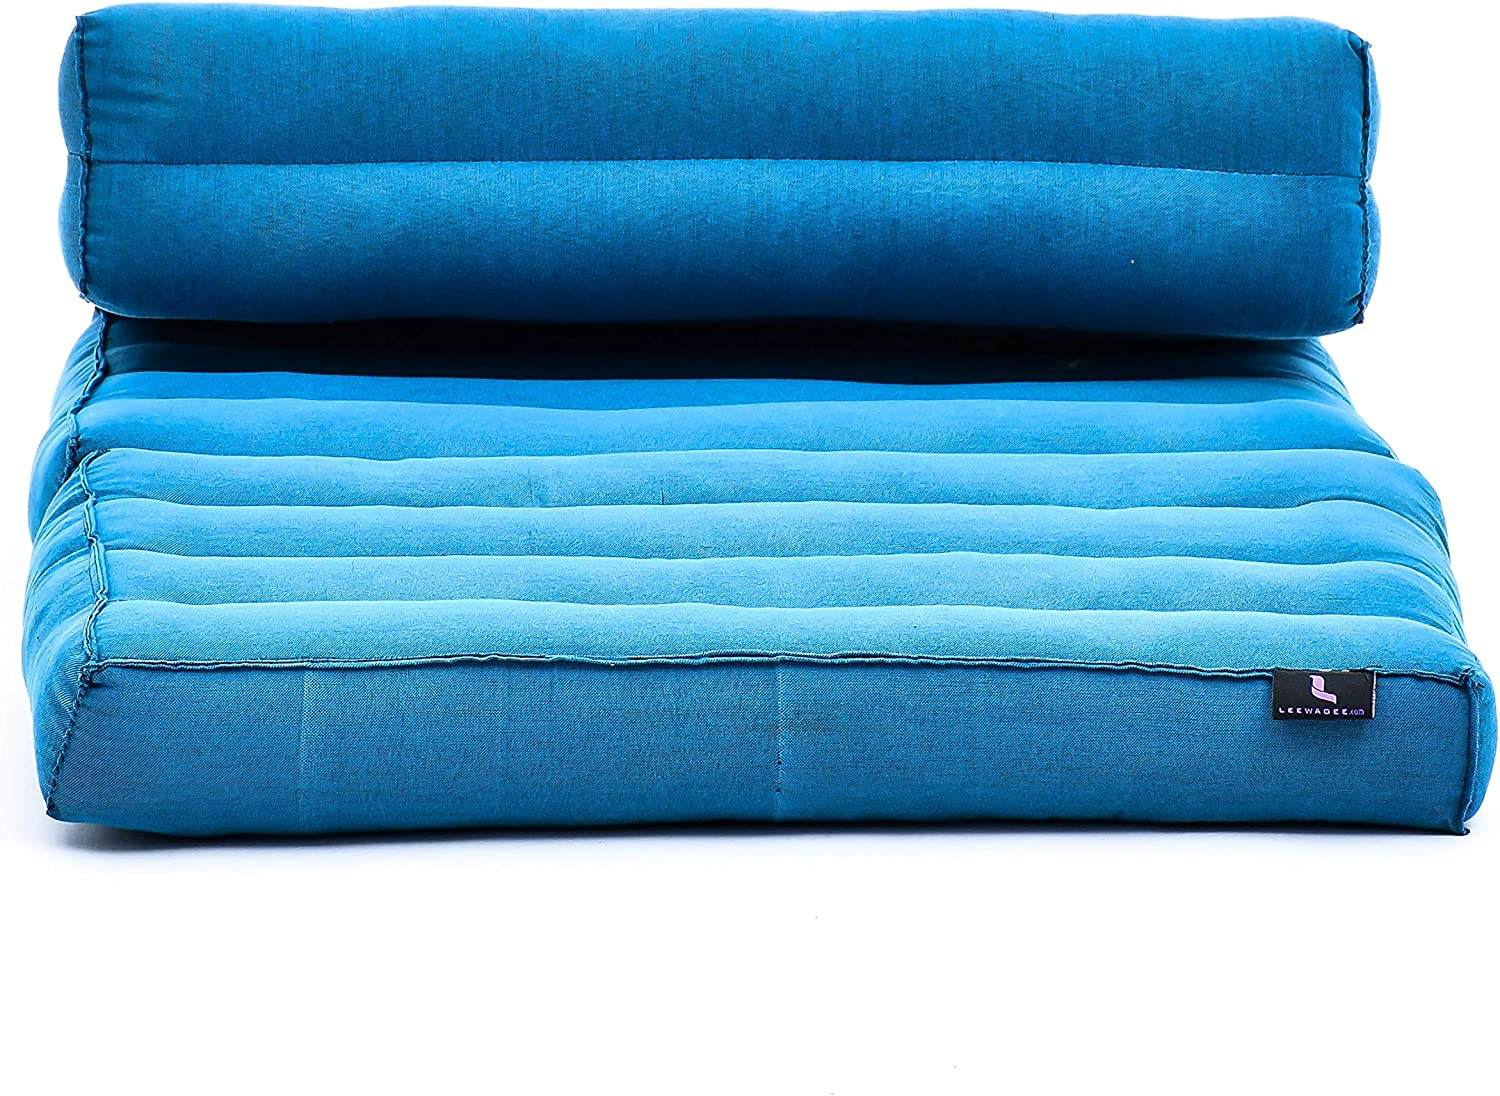 Leewadee Foldable Meditation Floor Seat 2 in 1 Set Meditation Pillow and Cushion Underlay in One Eco-Friendly Organic and Natural Kapok